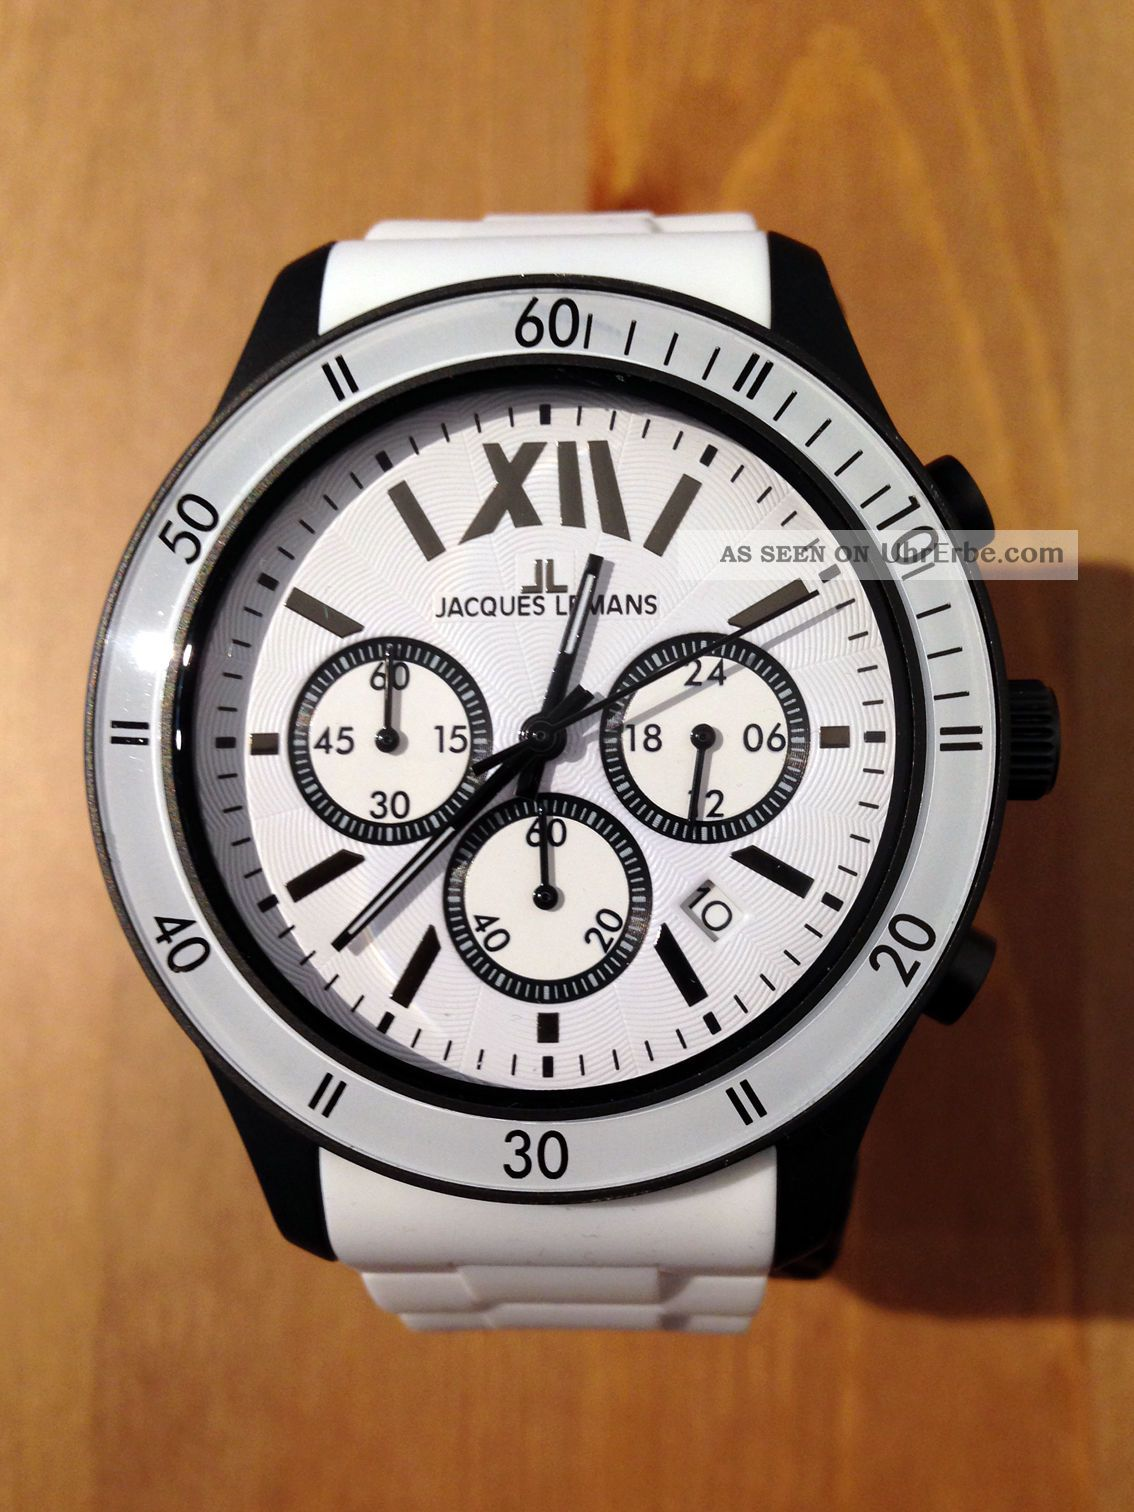 Orig.  Jacques Lemans Rome Sports - 44 Mm Chronograph - Unisex - Uvp 149,  - - Top Armbanduhren Bild